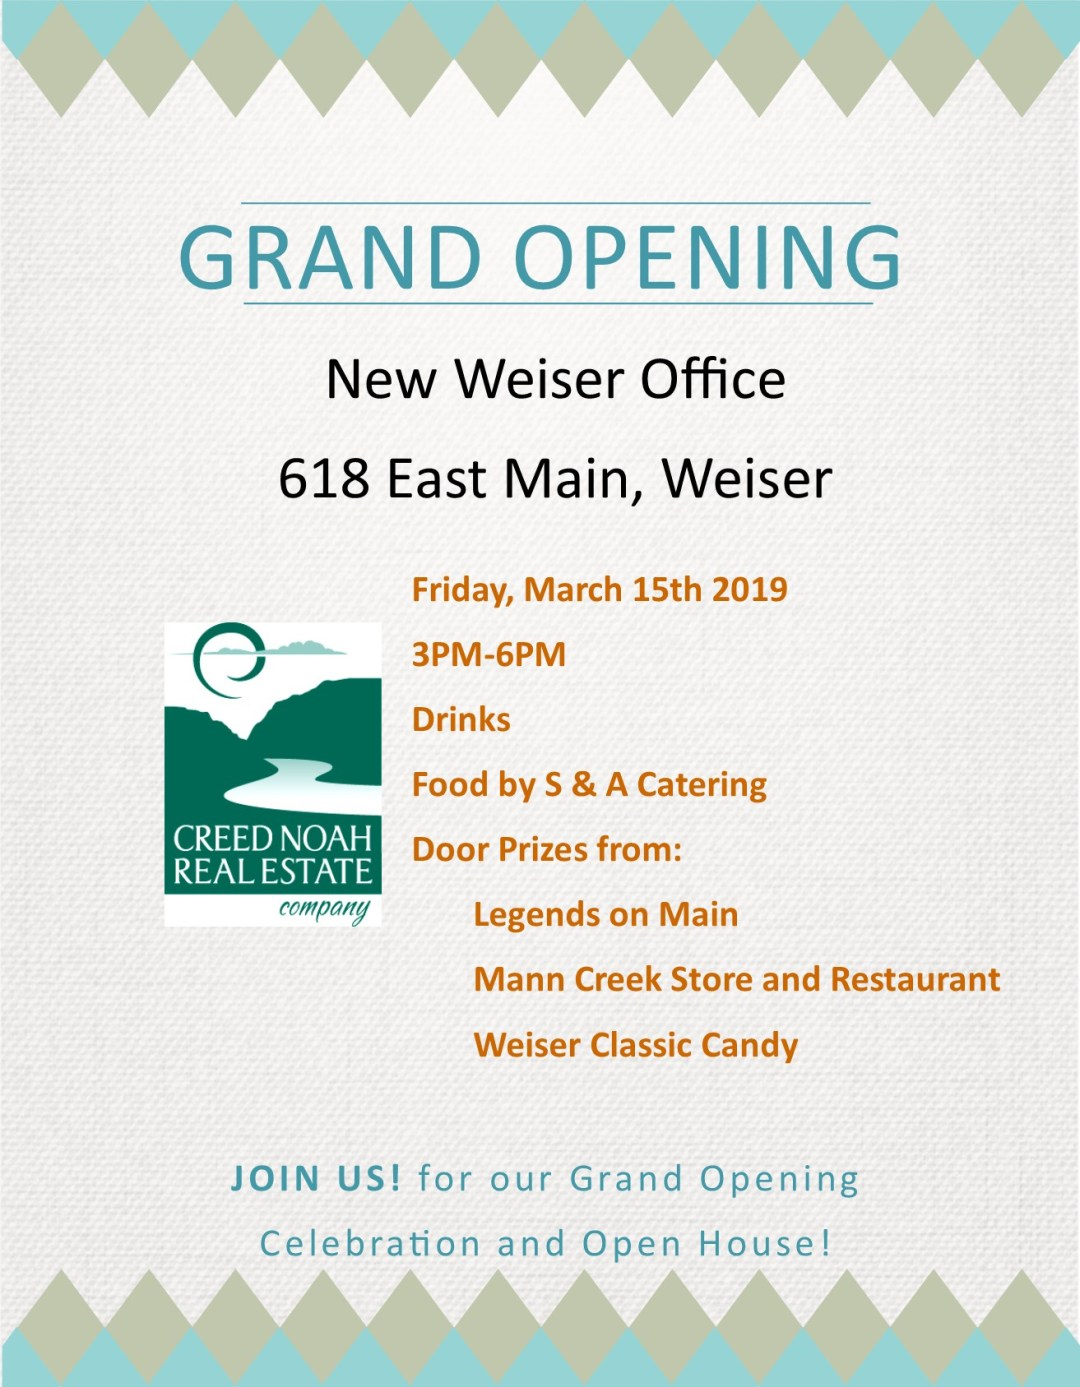 Creed Noah Real Estate Company Grand Opening Flyer